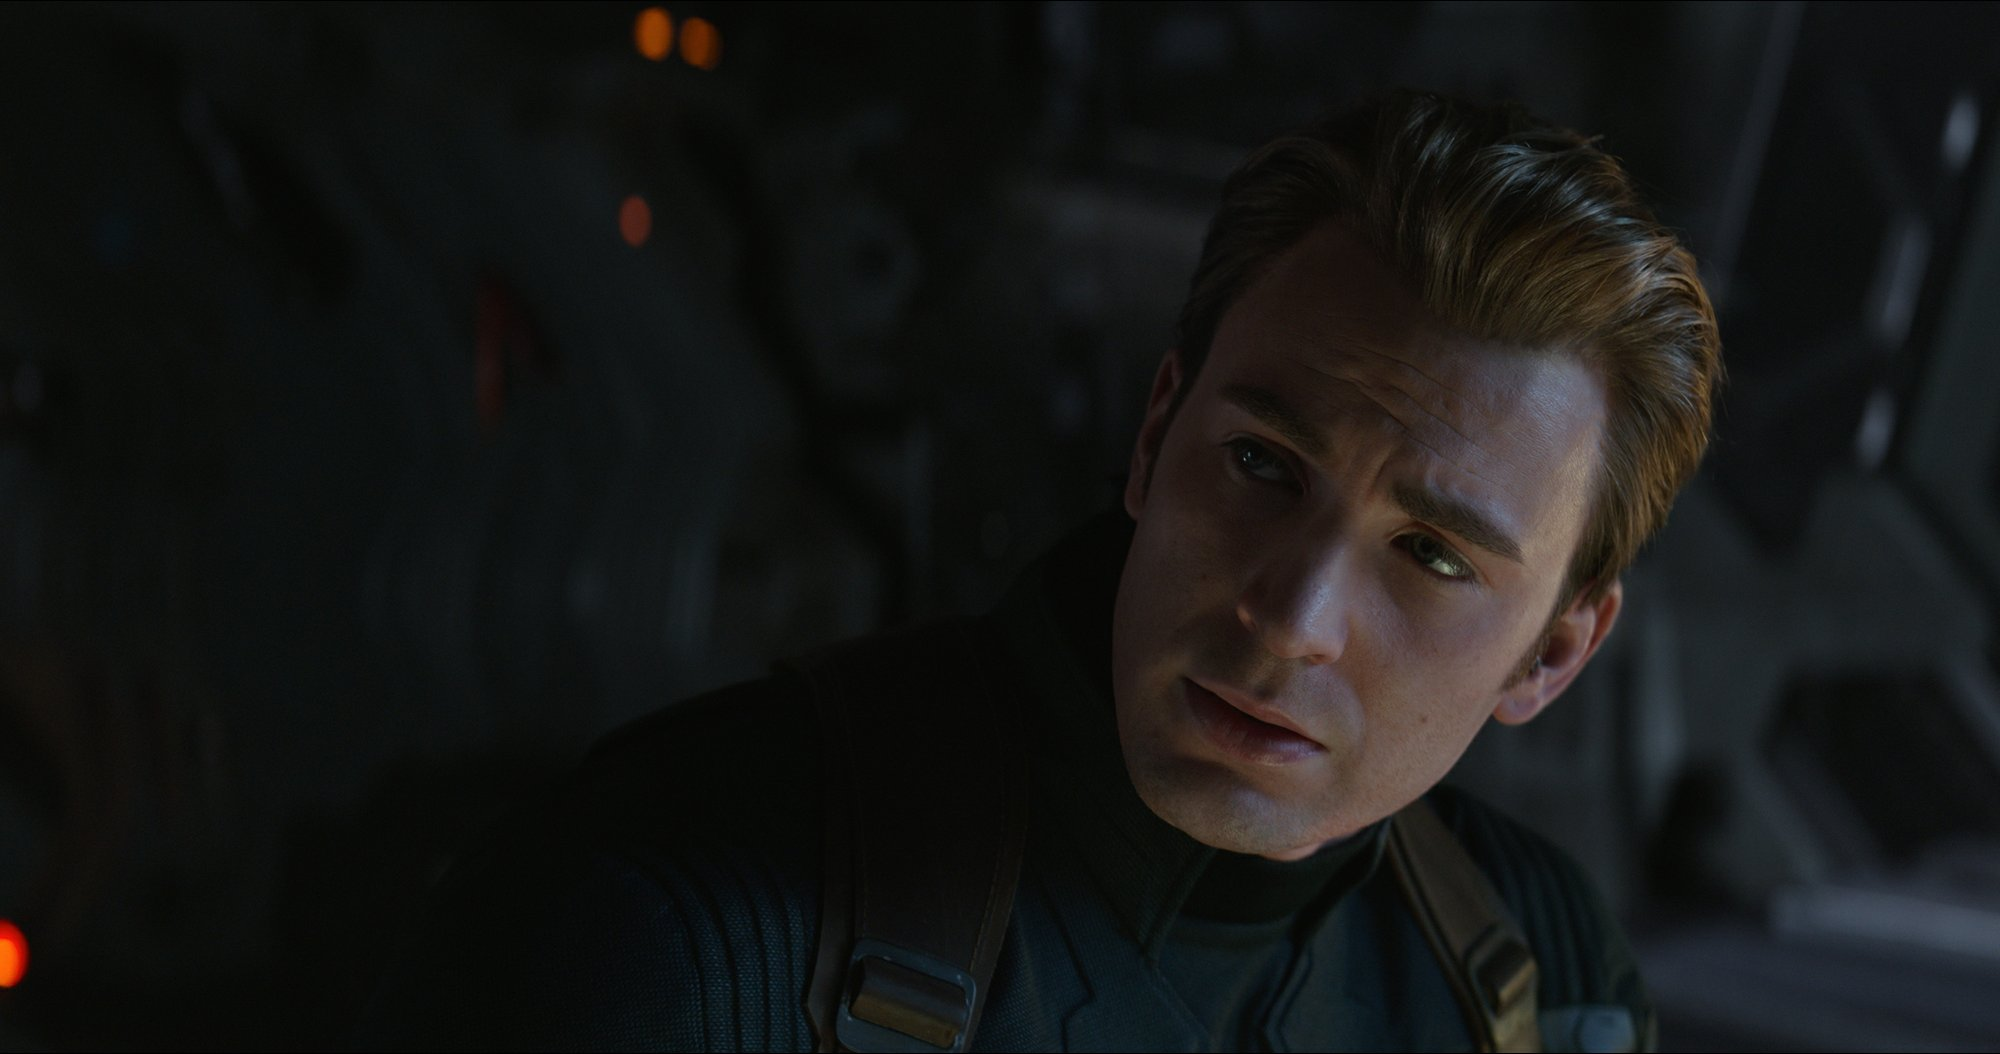 chris evans as captain america avengers endgame images